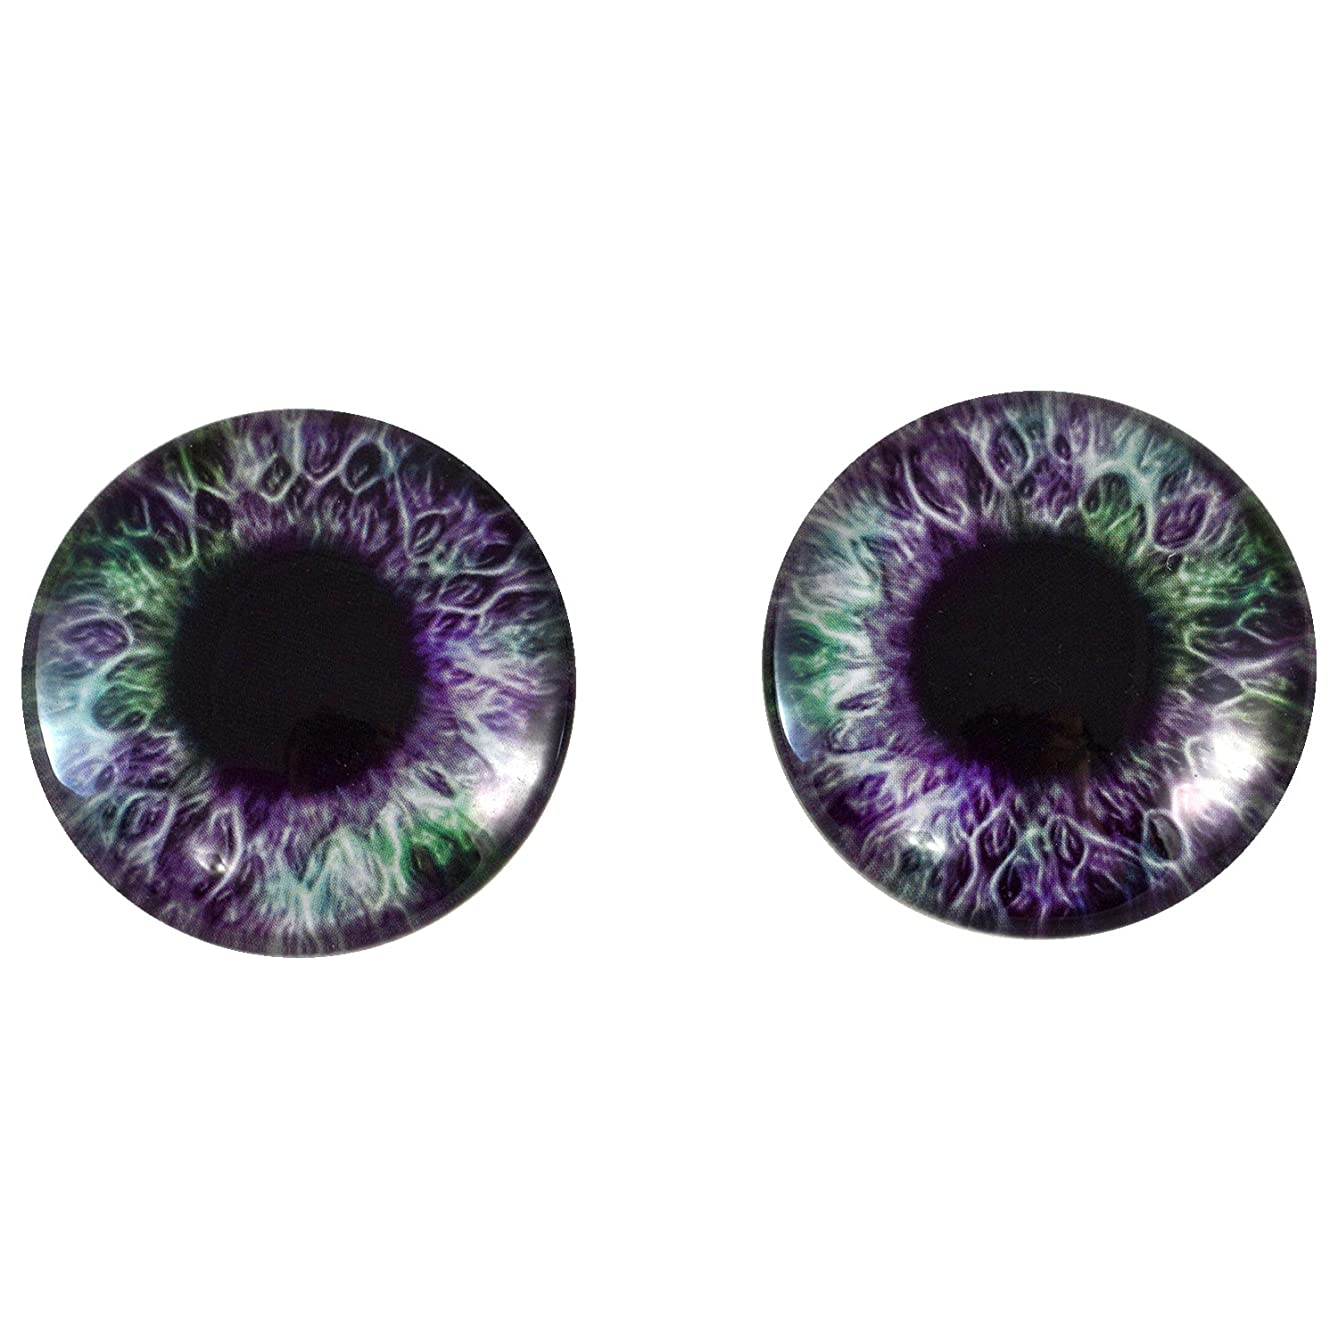 40mm Pair of Big Purple and Green Glass Eyes, for Jewelry Making, Arts Dolls, Sculptures, and More